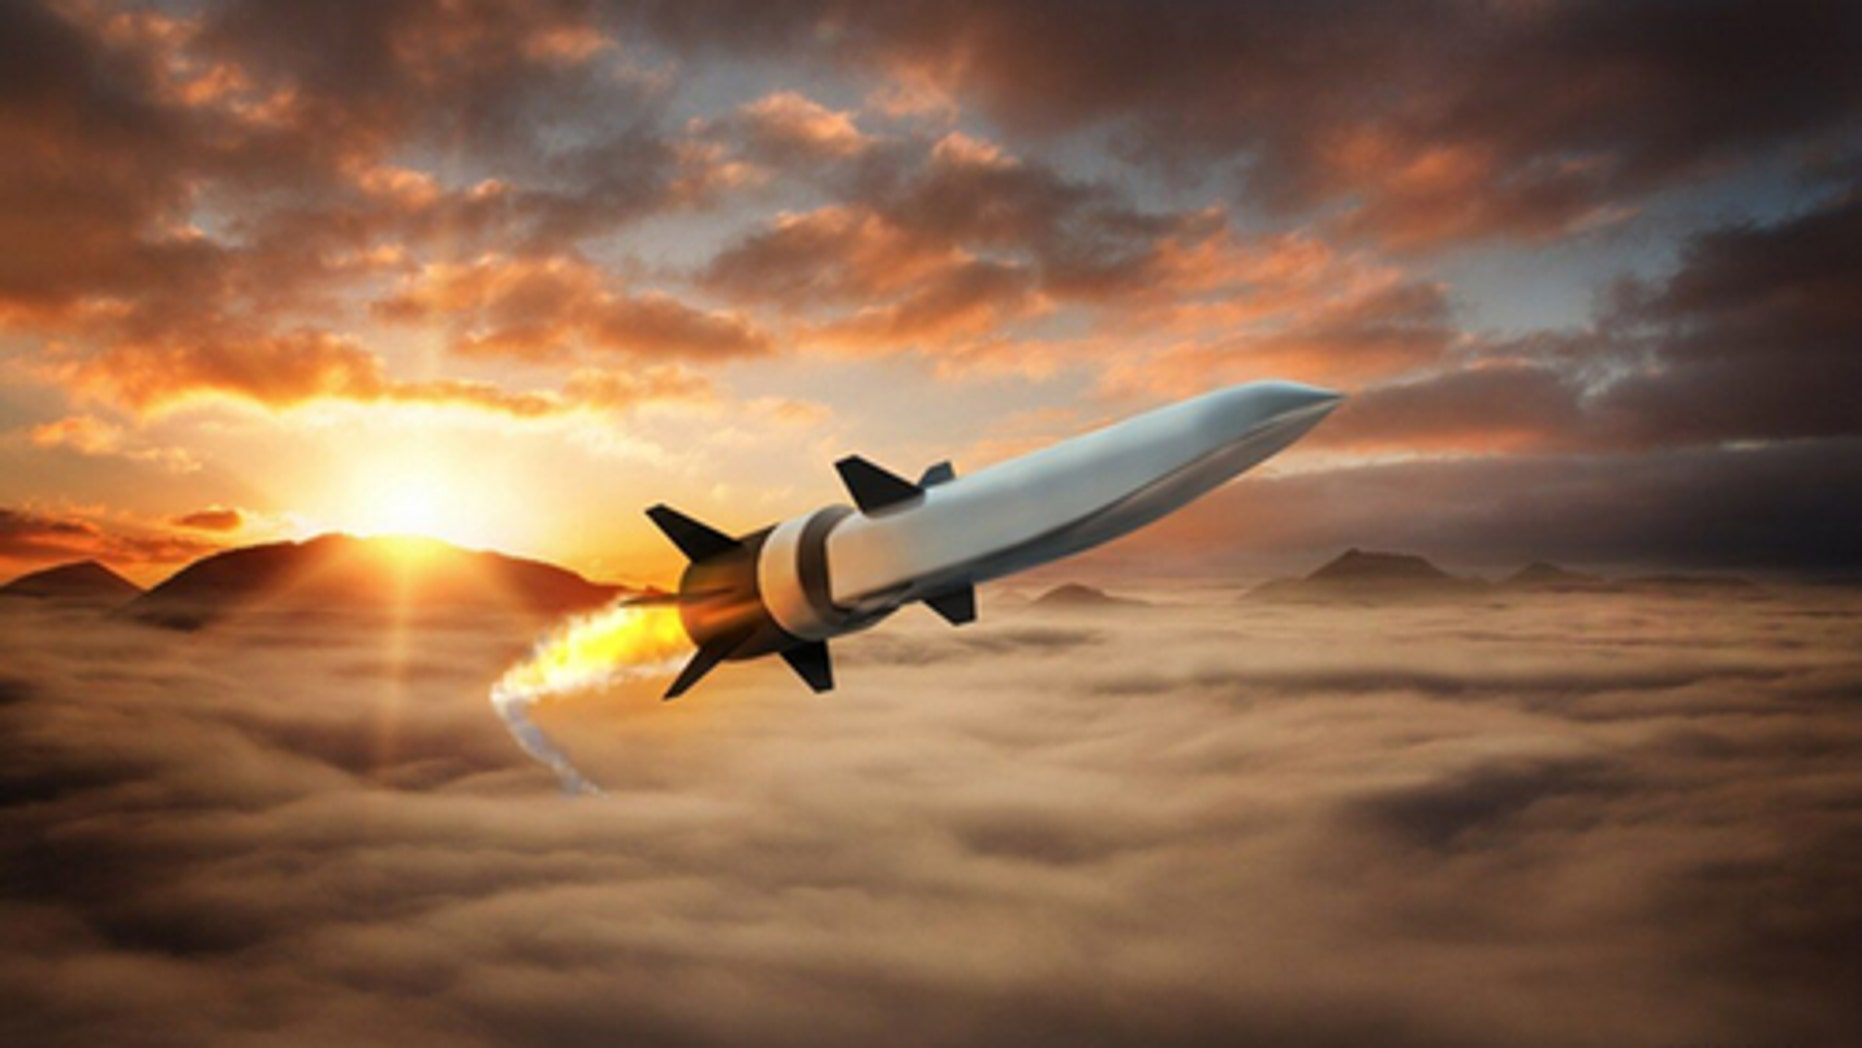 Artist's impression of the hypersonic weapon.